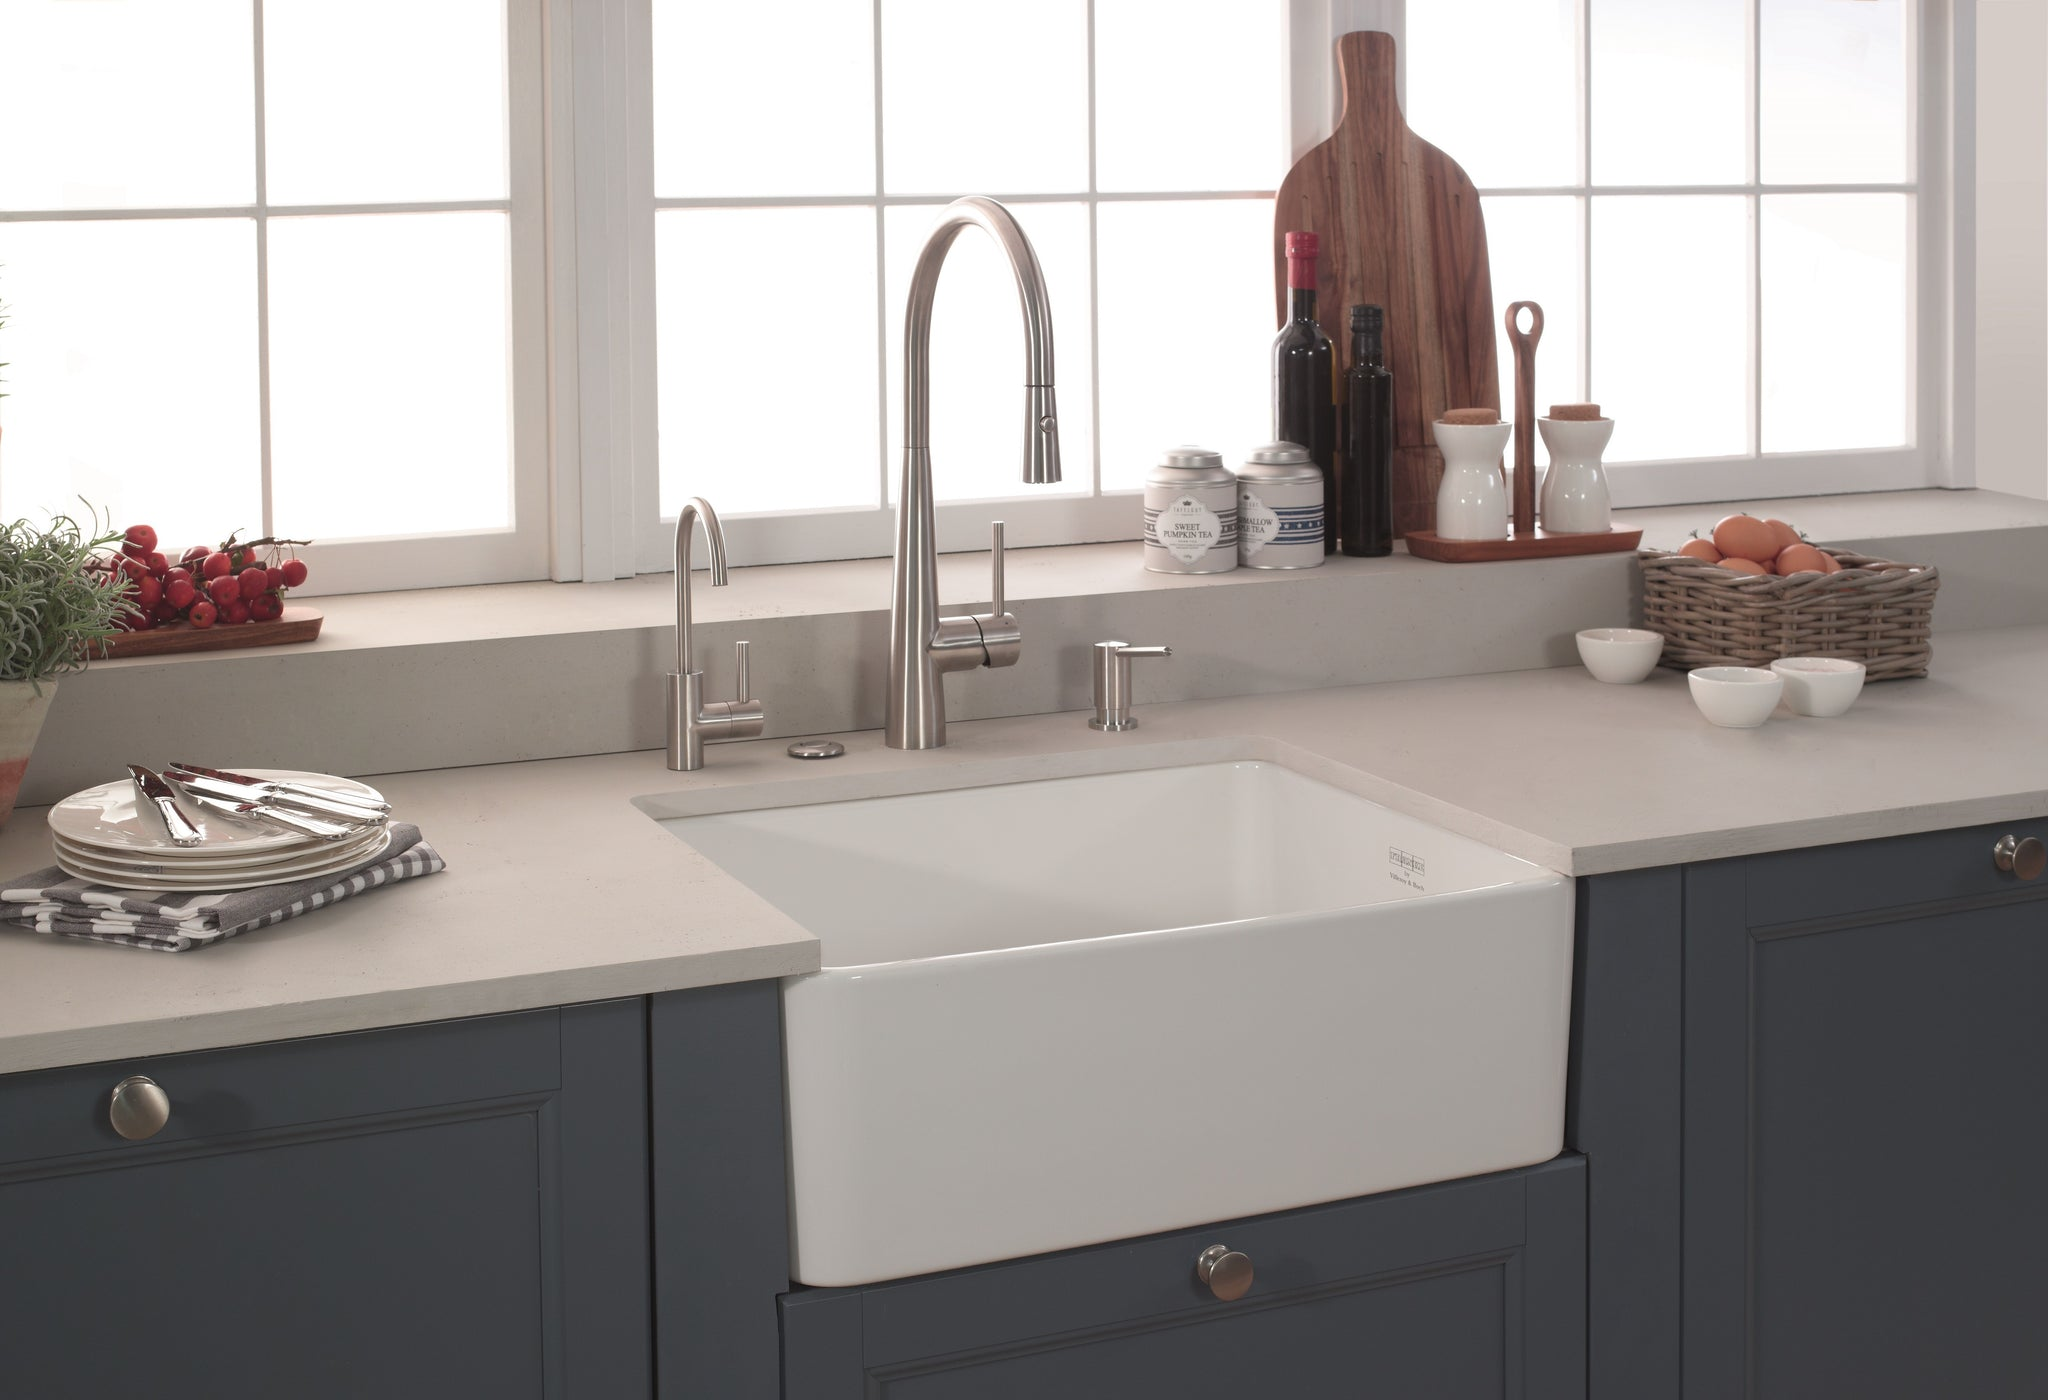 Franke manor house mhk110 28 fireclay 28 apron front kitchen sink in